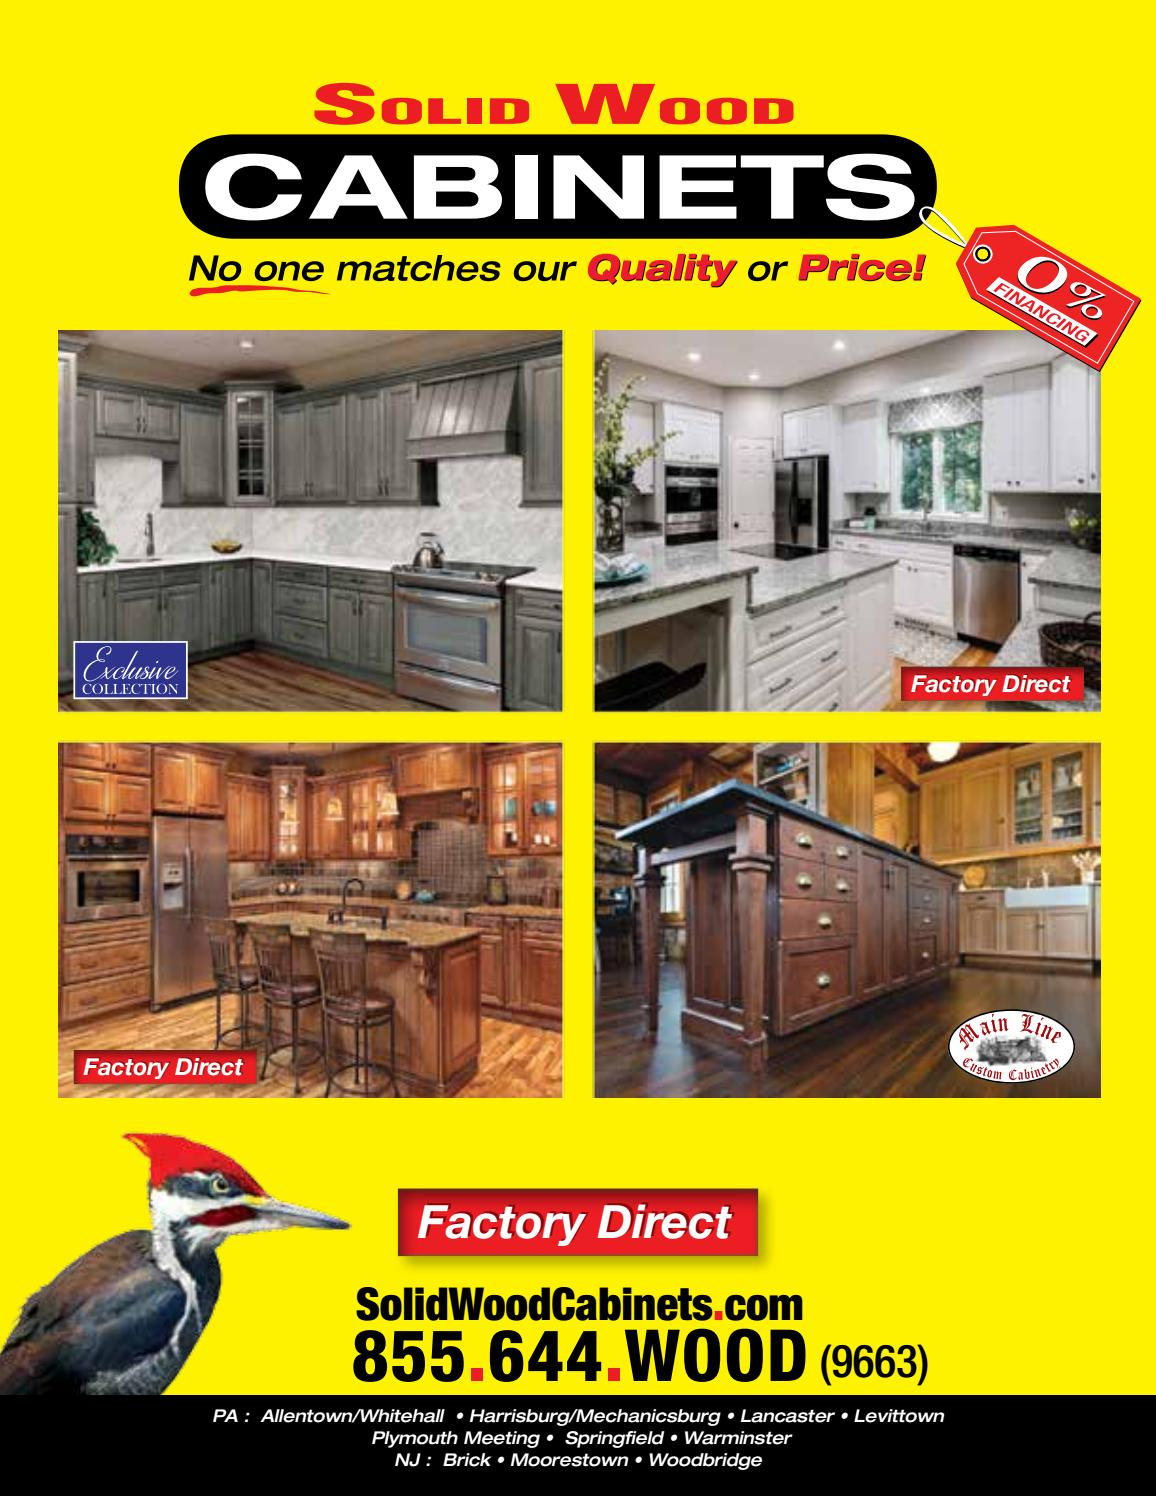 Solid Wood Cabinets Company By The Cabinet King   Issuu